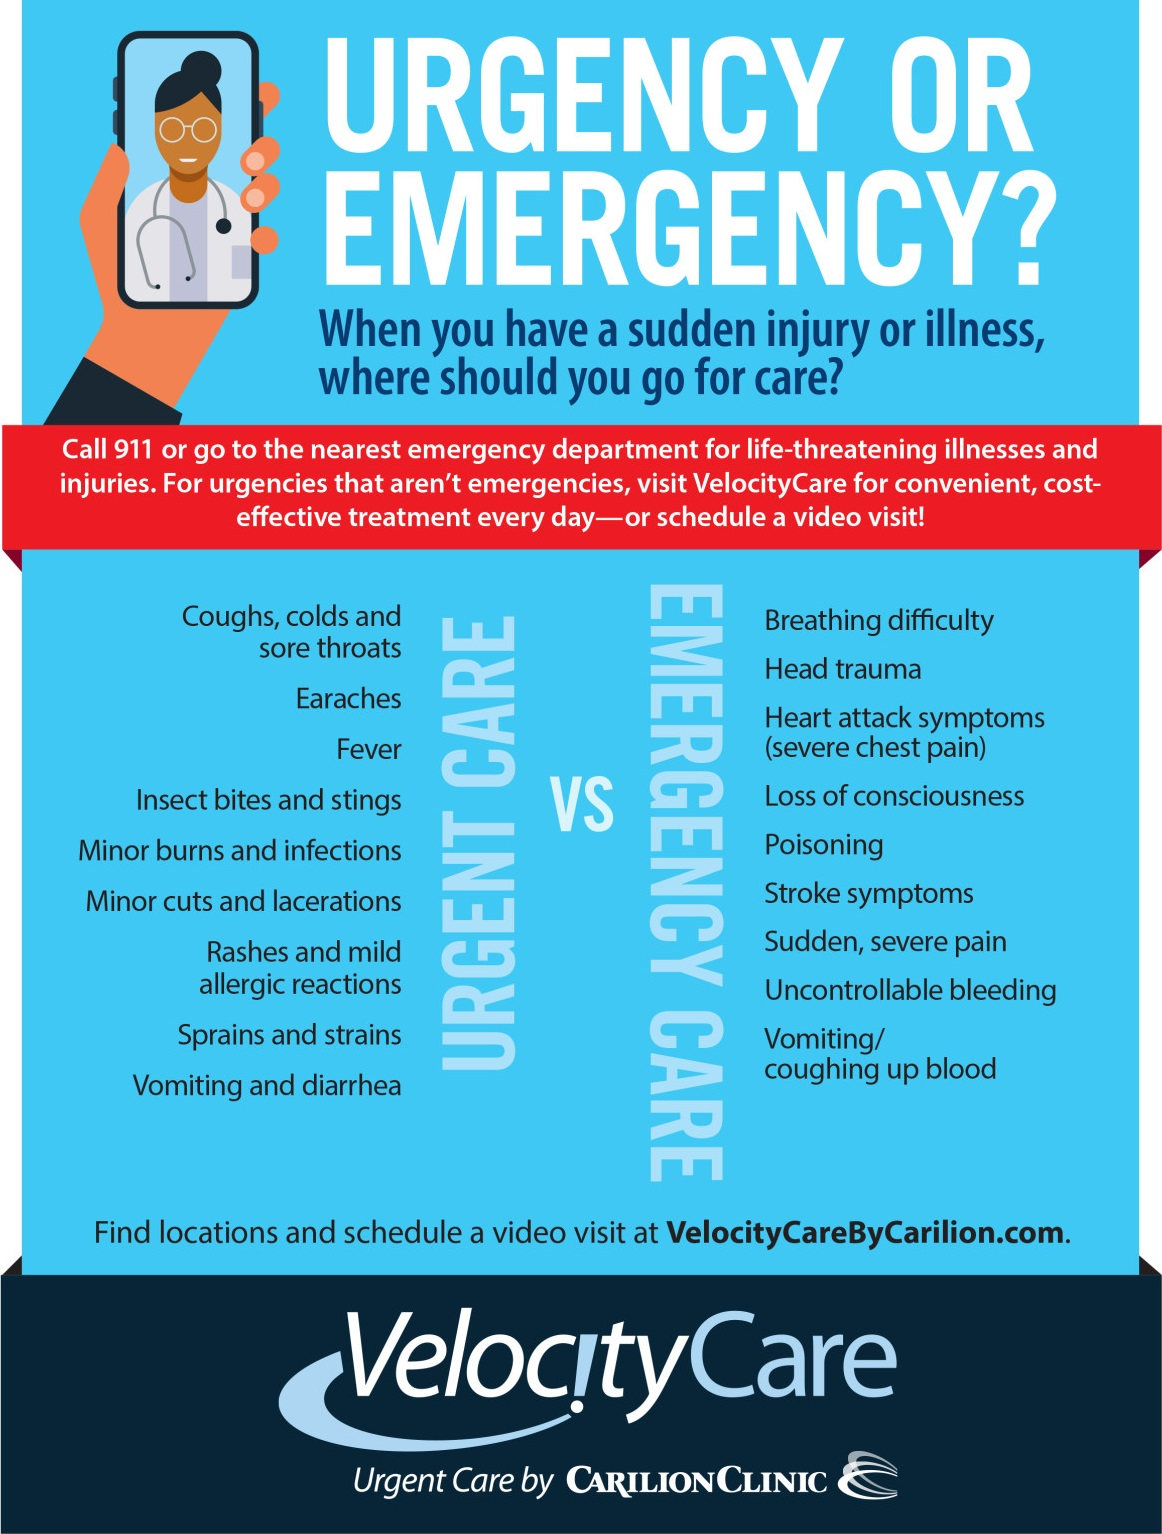 list of conditions appropriate for either urgent care or the emergency room